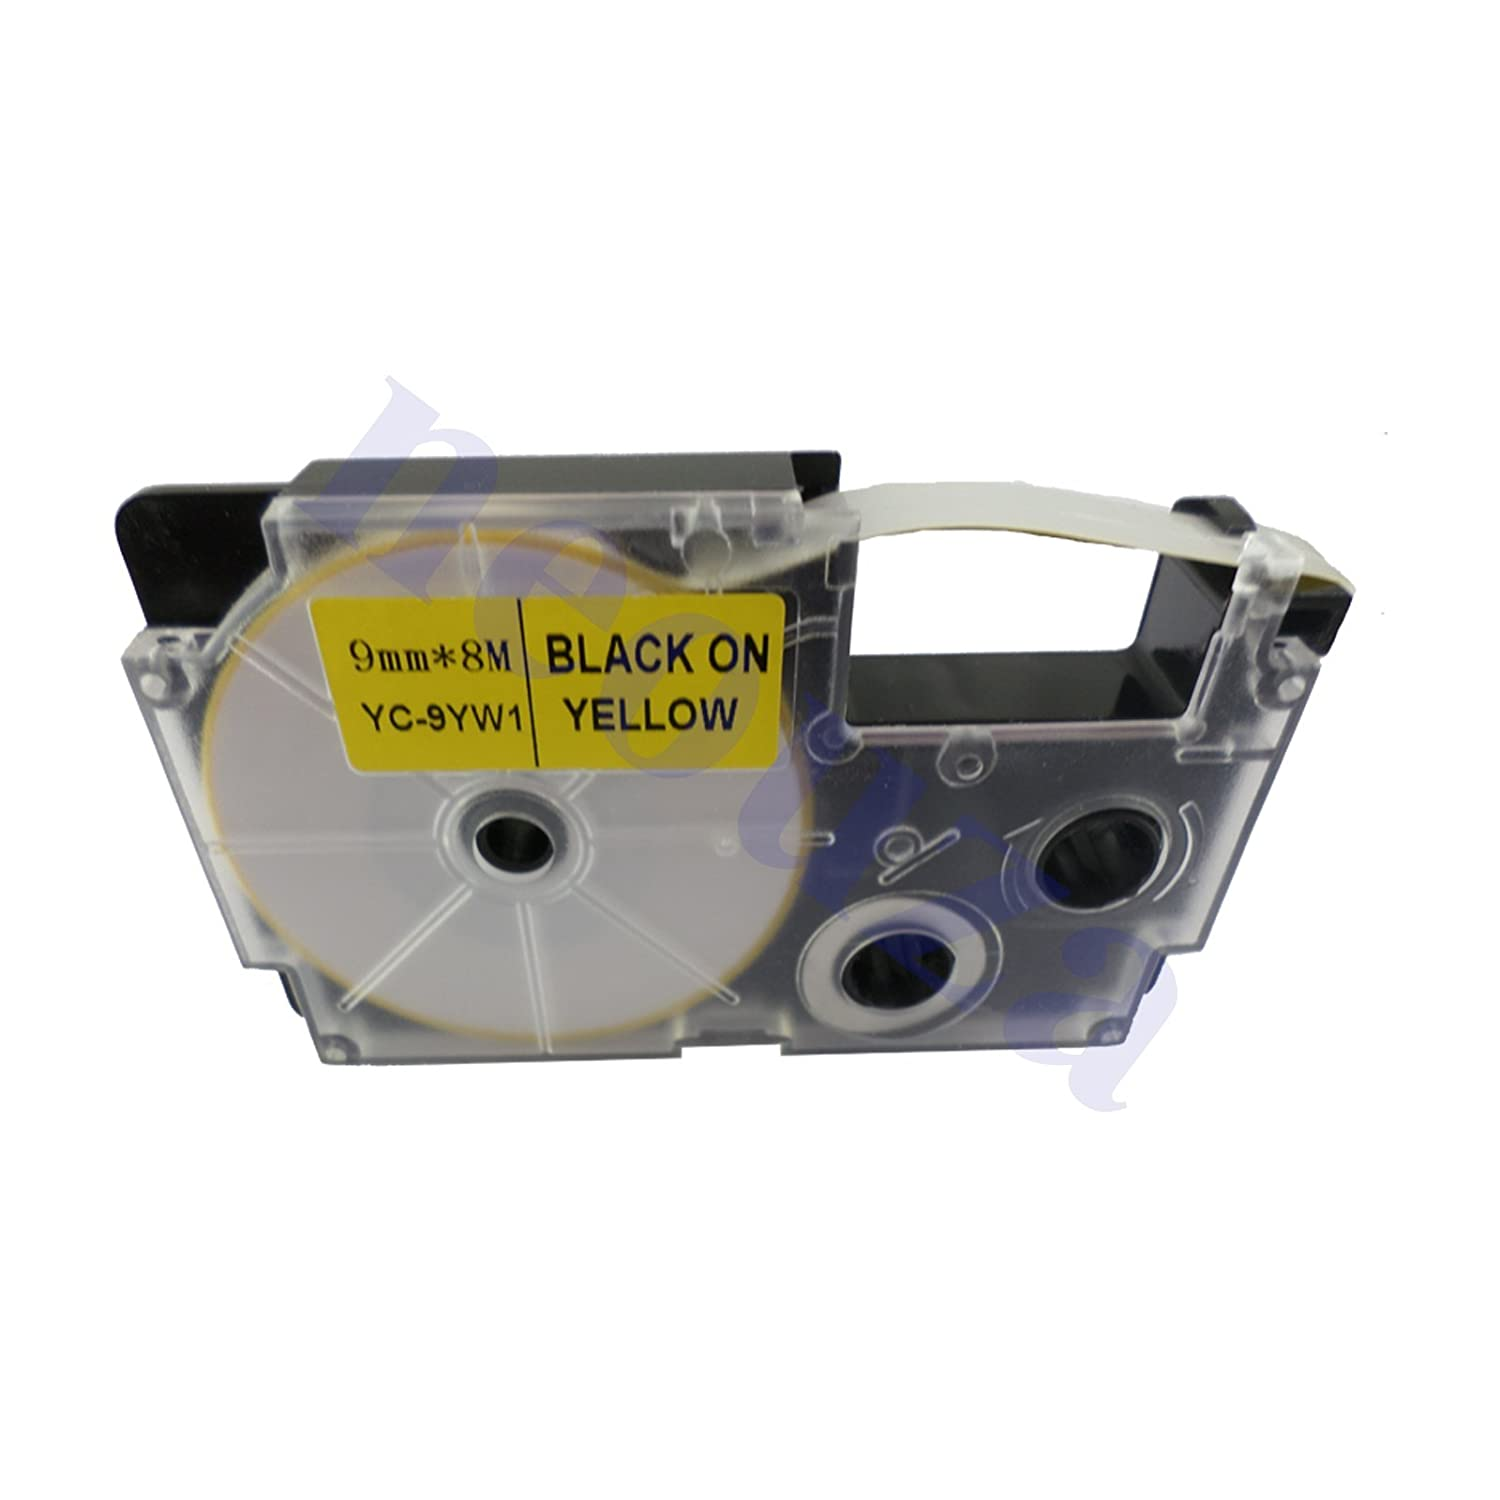 Great quality Compatible for Casio Tape 9mm BLACK on Yellow Label XR-9YW1 DUOVEC